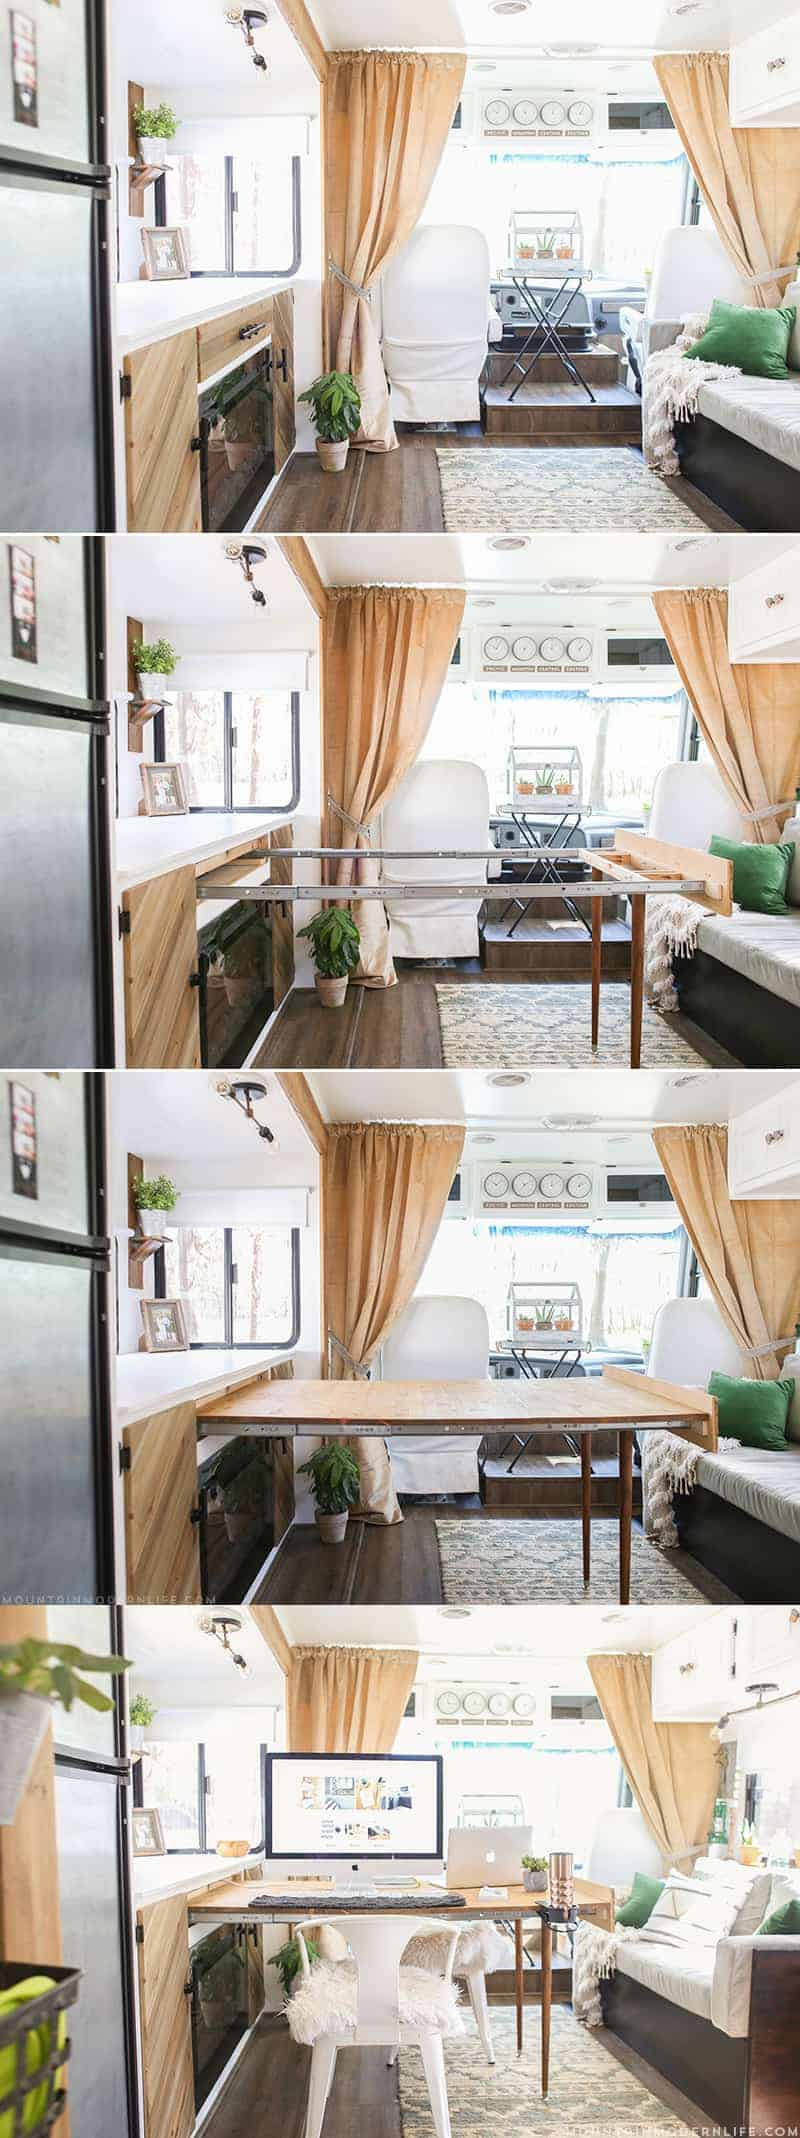 Whether you live in a small space, or are looking for space saving ideas, you've gotta check out this hidden DIY pull-out table that was built inside a RV!